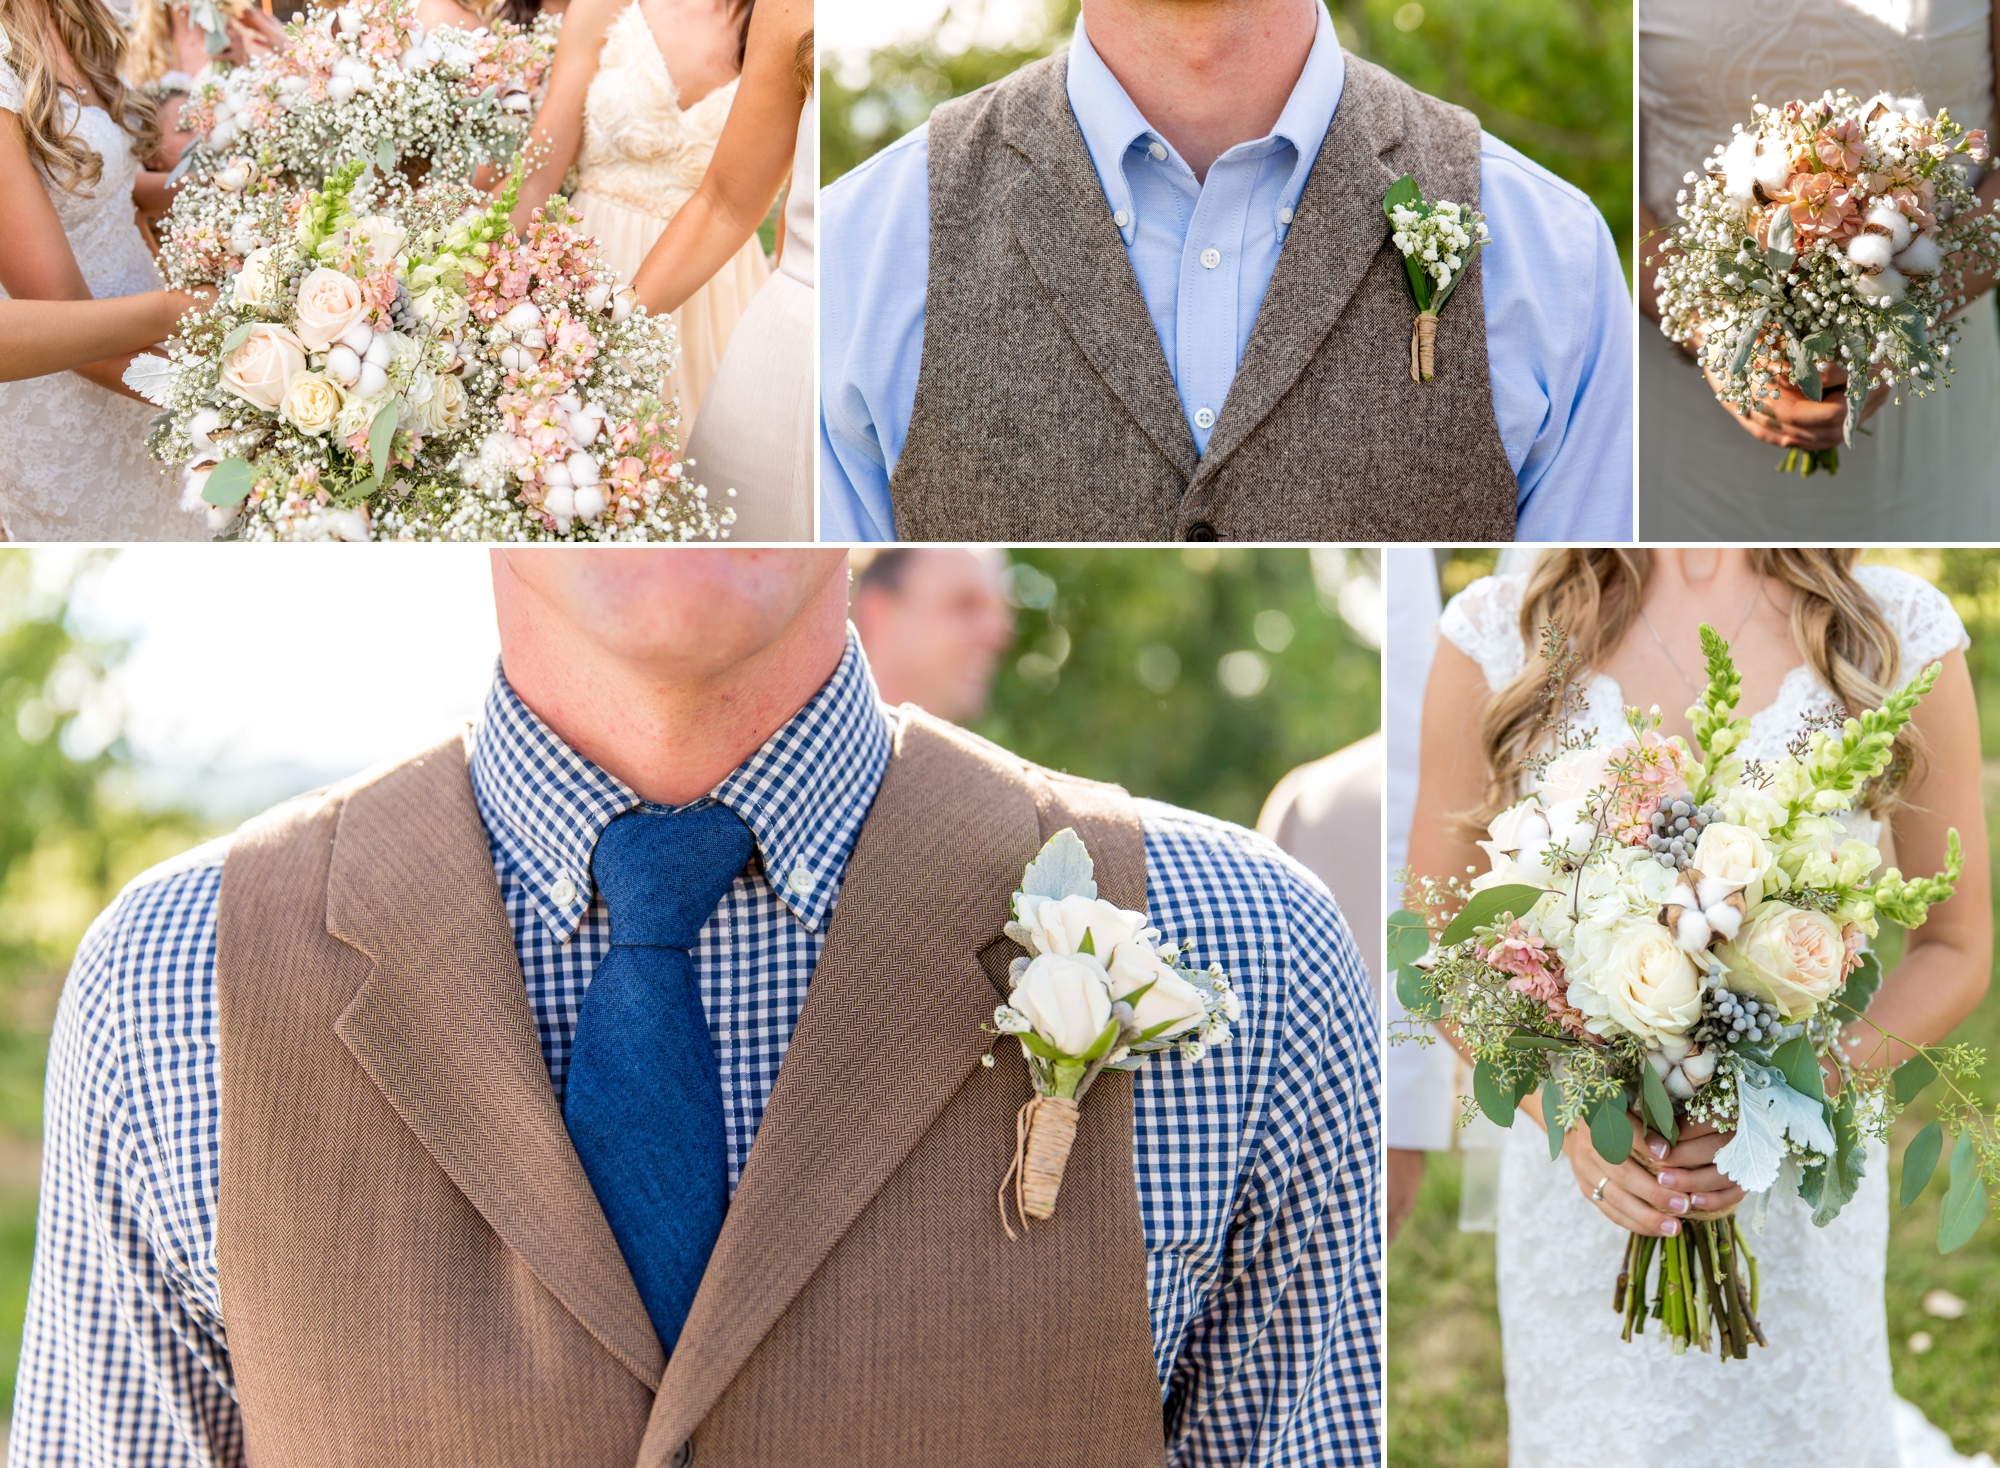 Bridesmaid and bridesbouquets along with the groom and groomsman boutonnieres! Loved the details with the arrangements with hints of cotton to tie in the farm!!